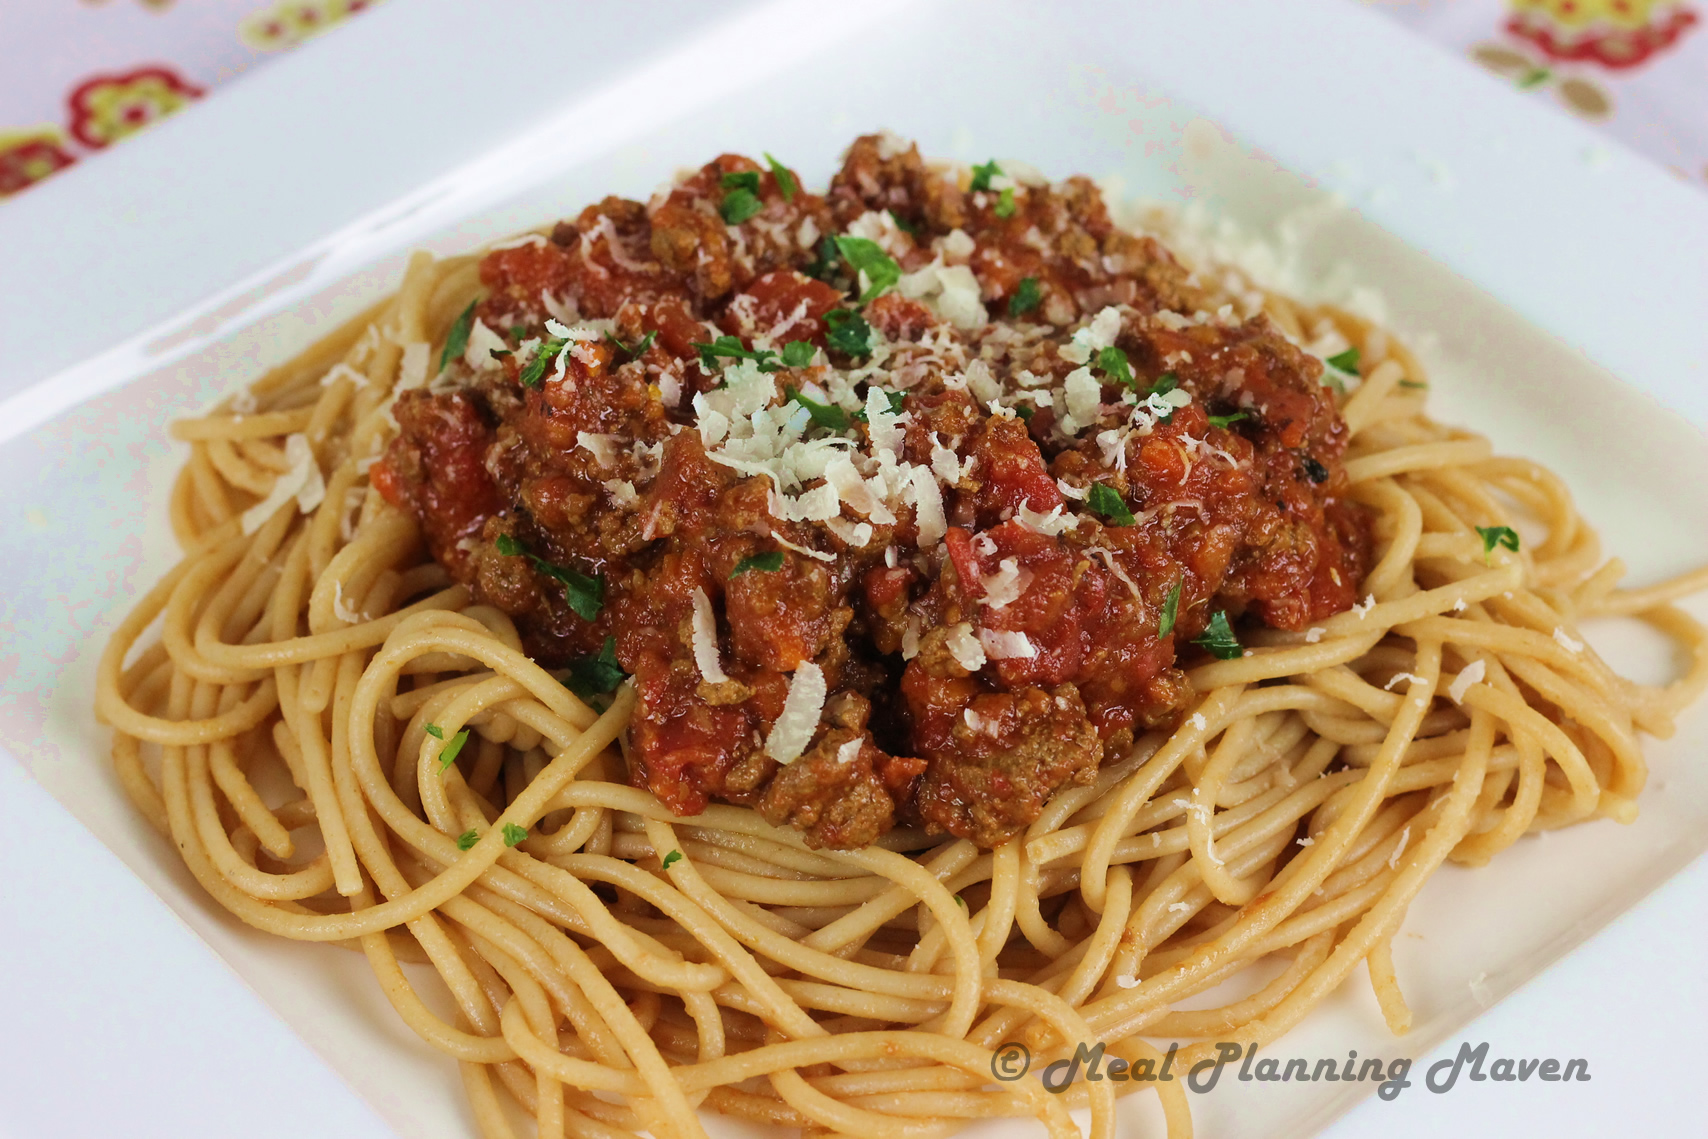 Crockpot Spaghetti Sauce with Meat - Meal Planning Maven